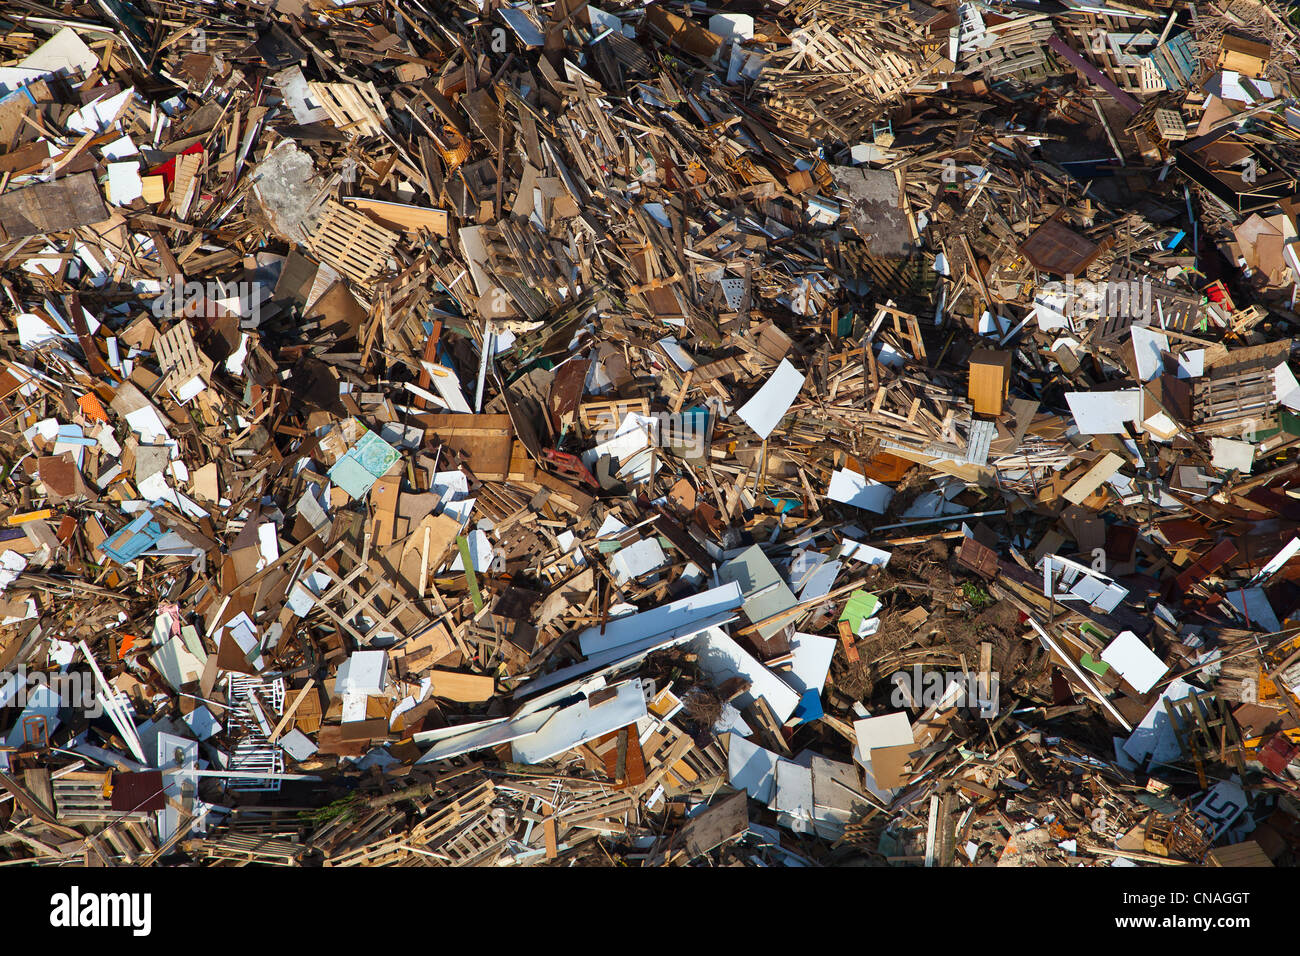 France, Eure, La Chapelle Reanville, landfill site, waste storage compartment ordinary household and industrial - Stock Image